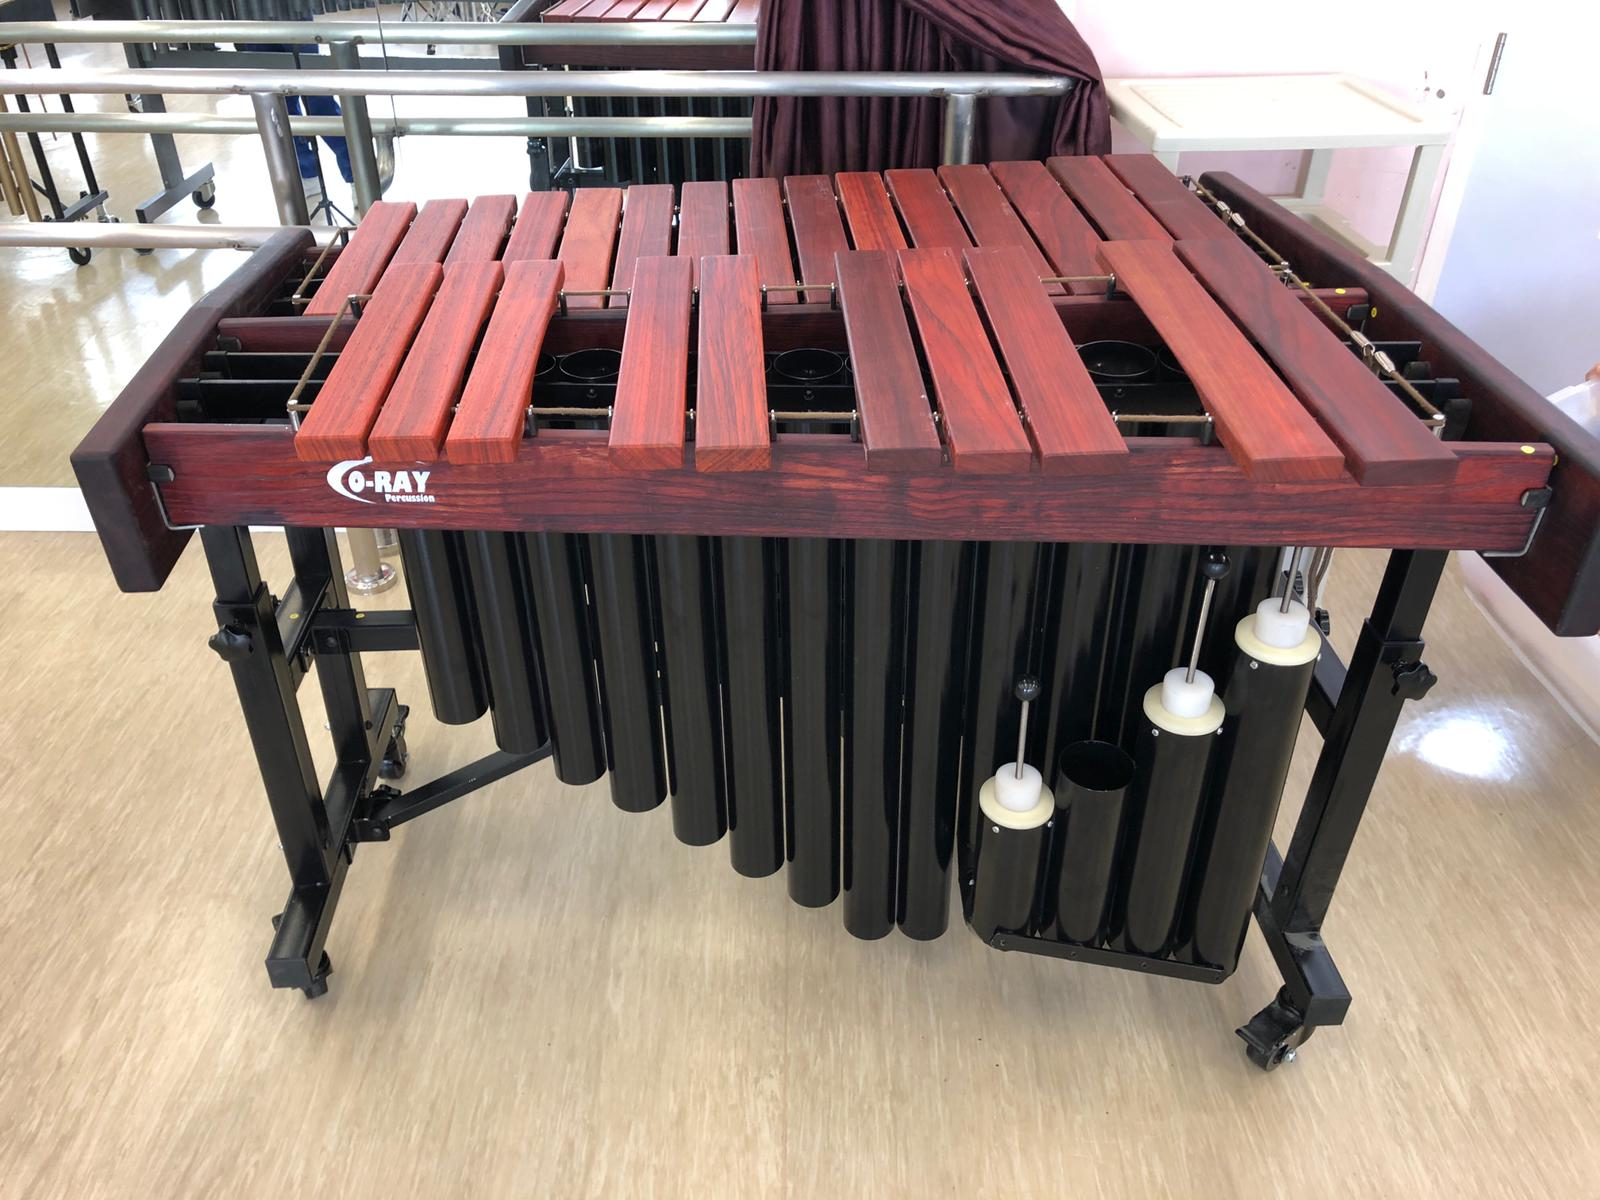 Coray Bass Marimba